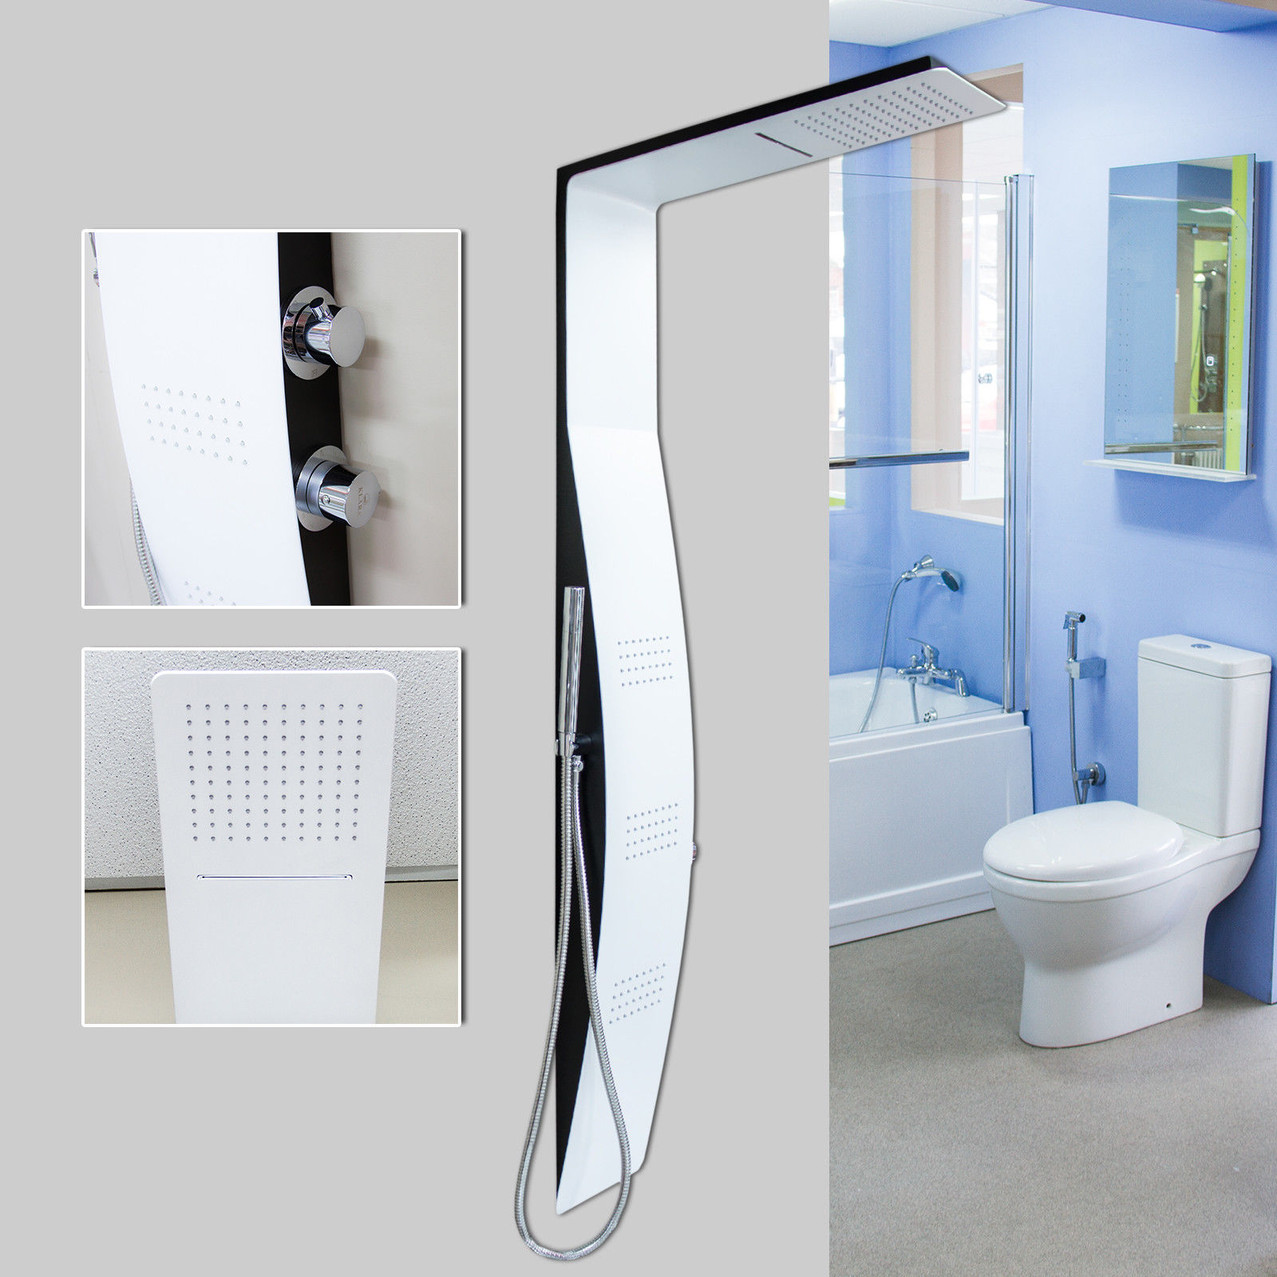 Bathroom, bath store, showroom, Luton, U